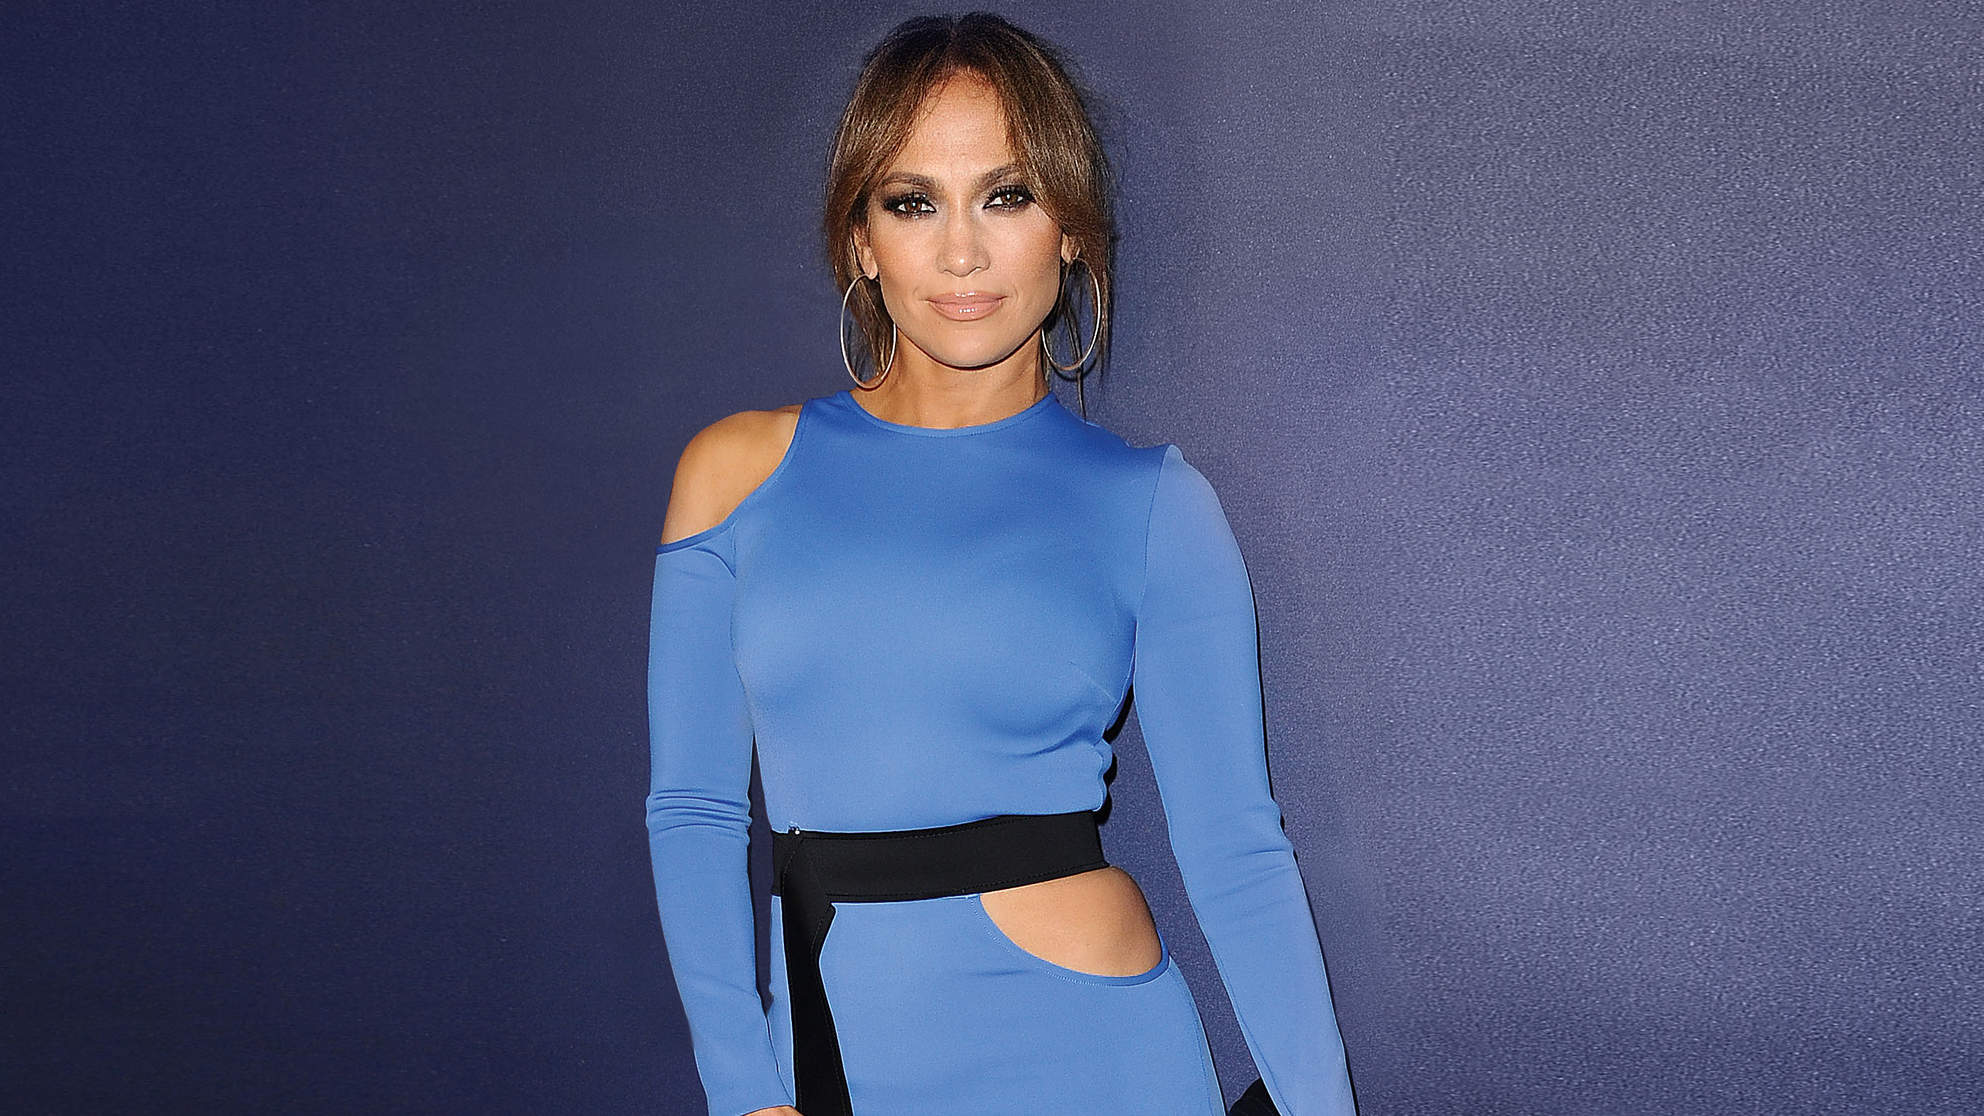 Jennifer Lopez / Health.com